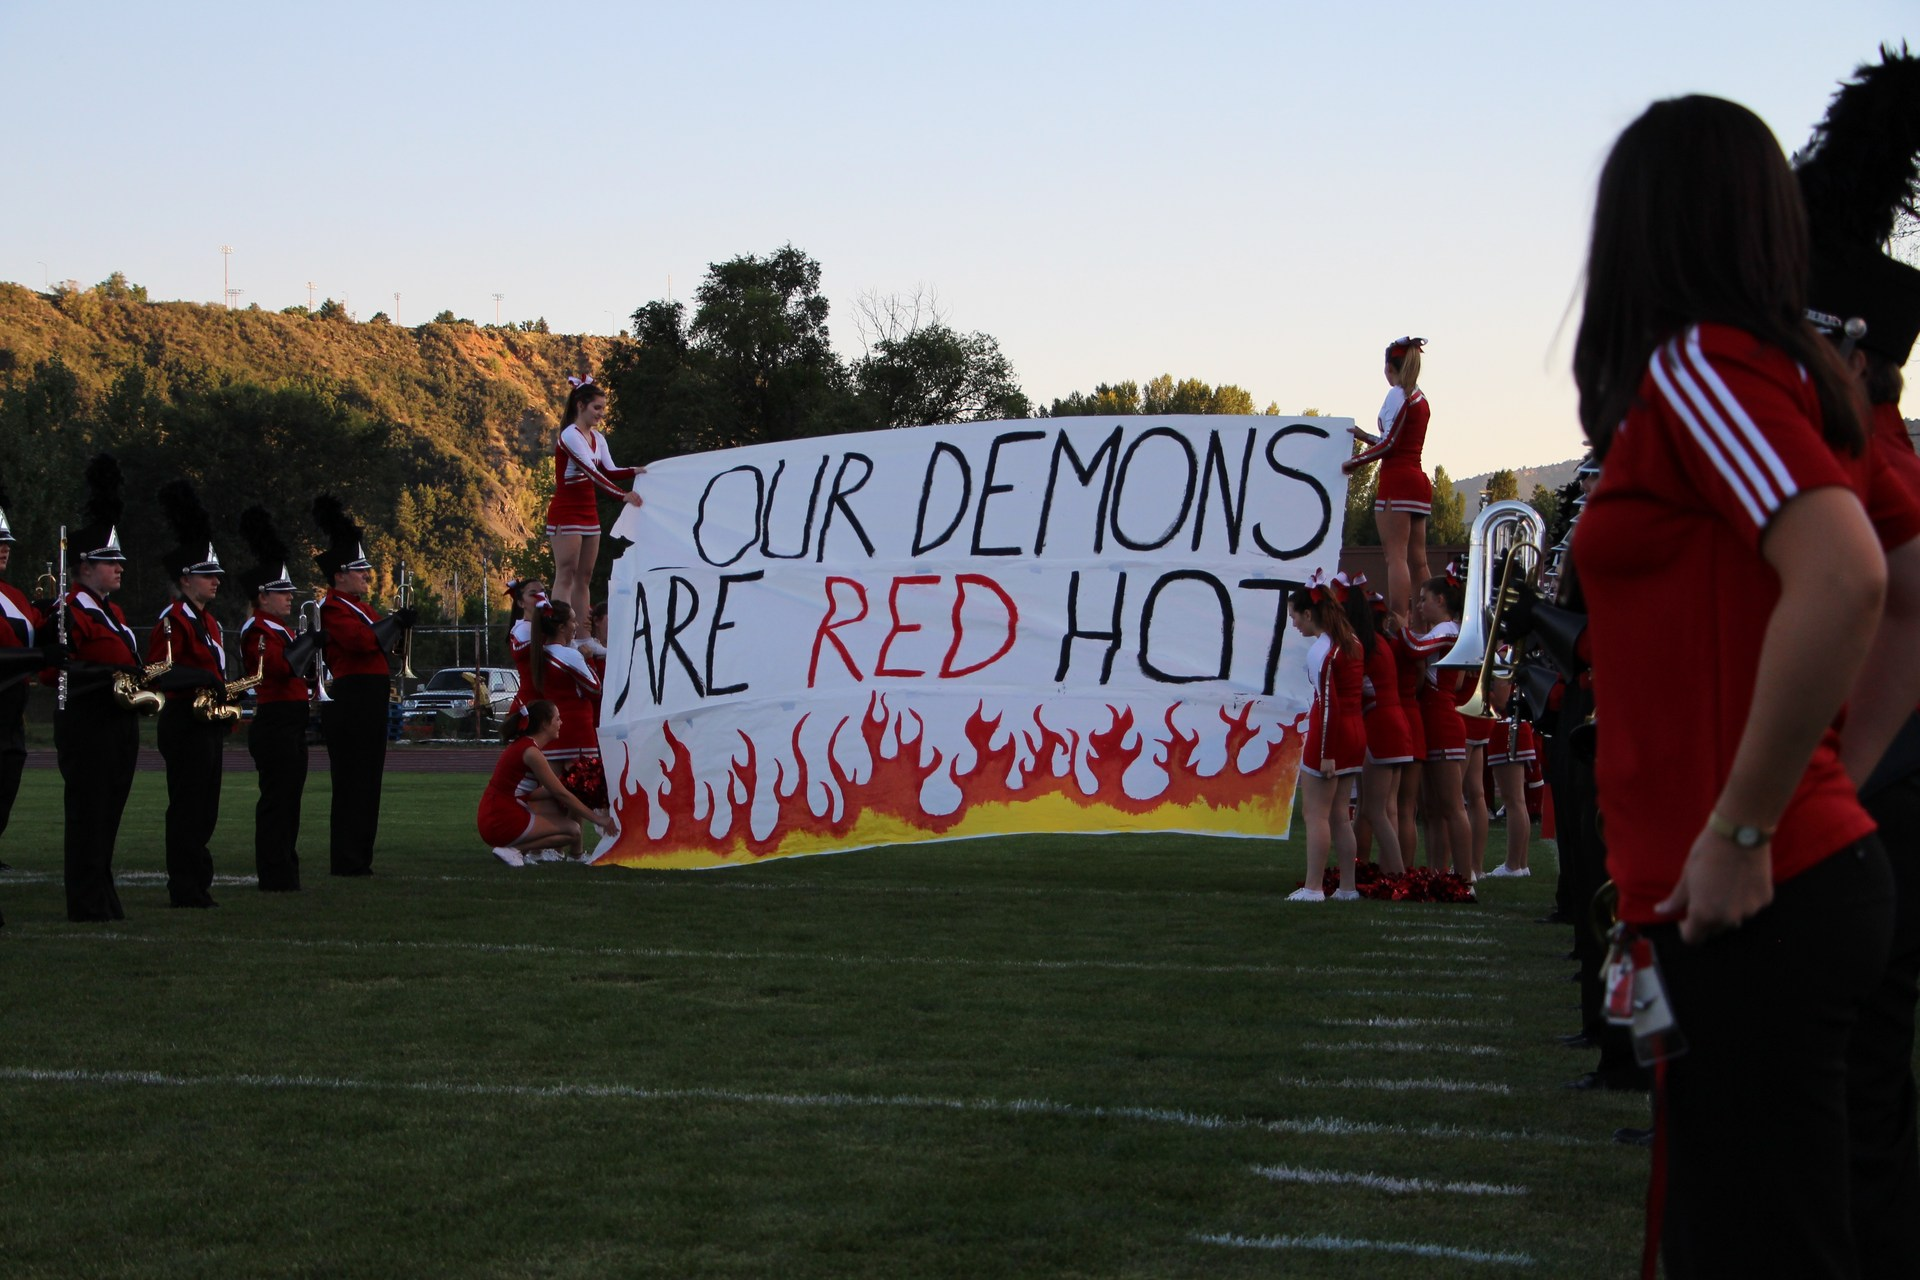 Image of the entry banner for the Football team at DHS